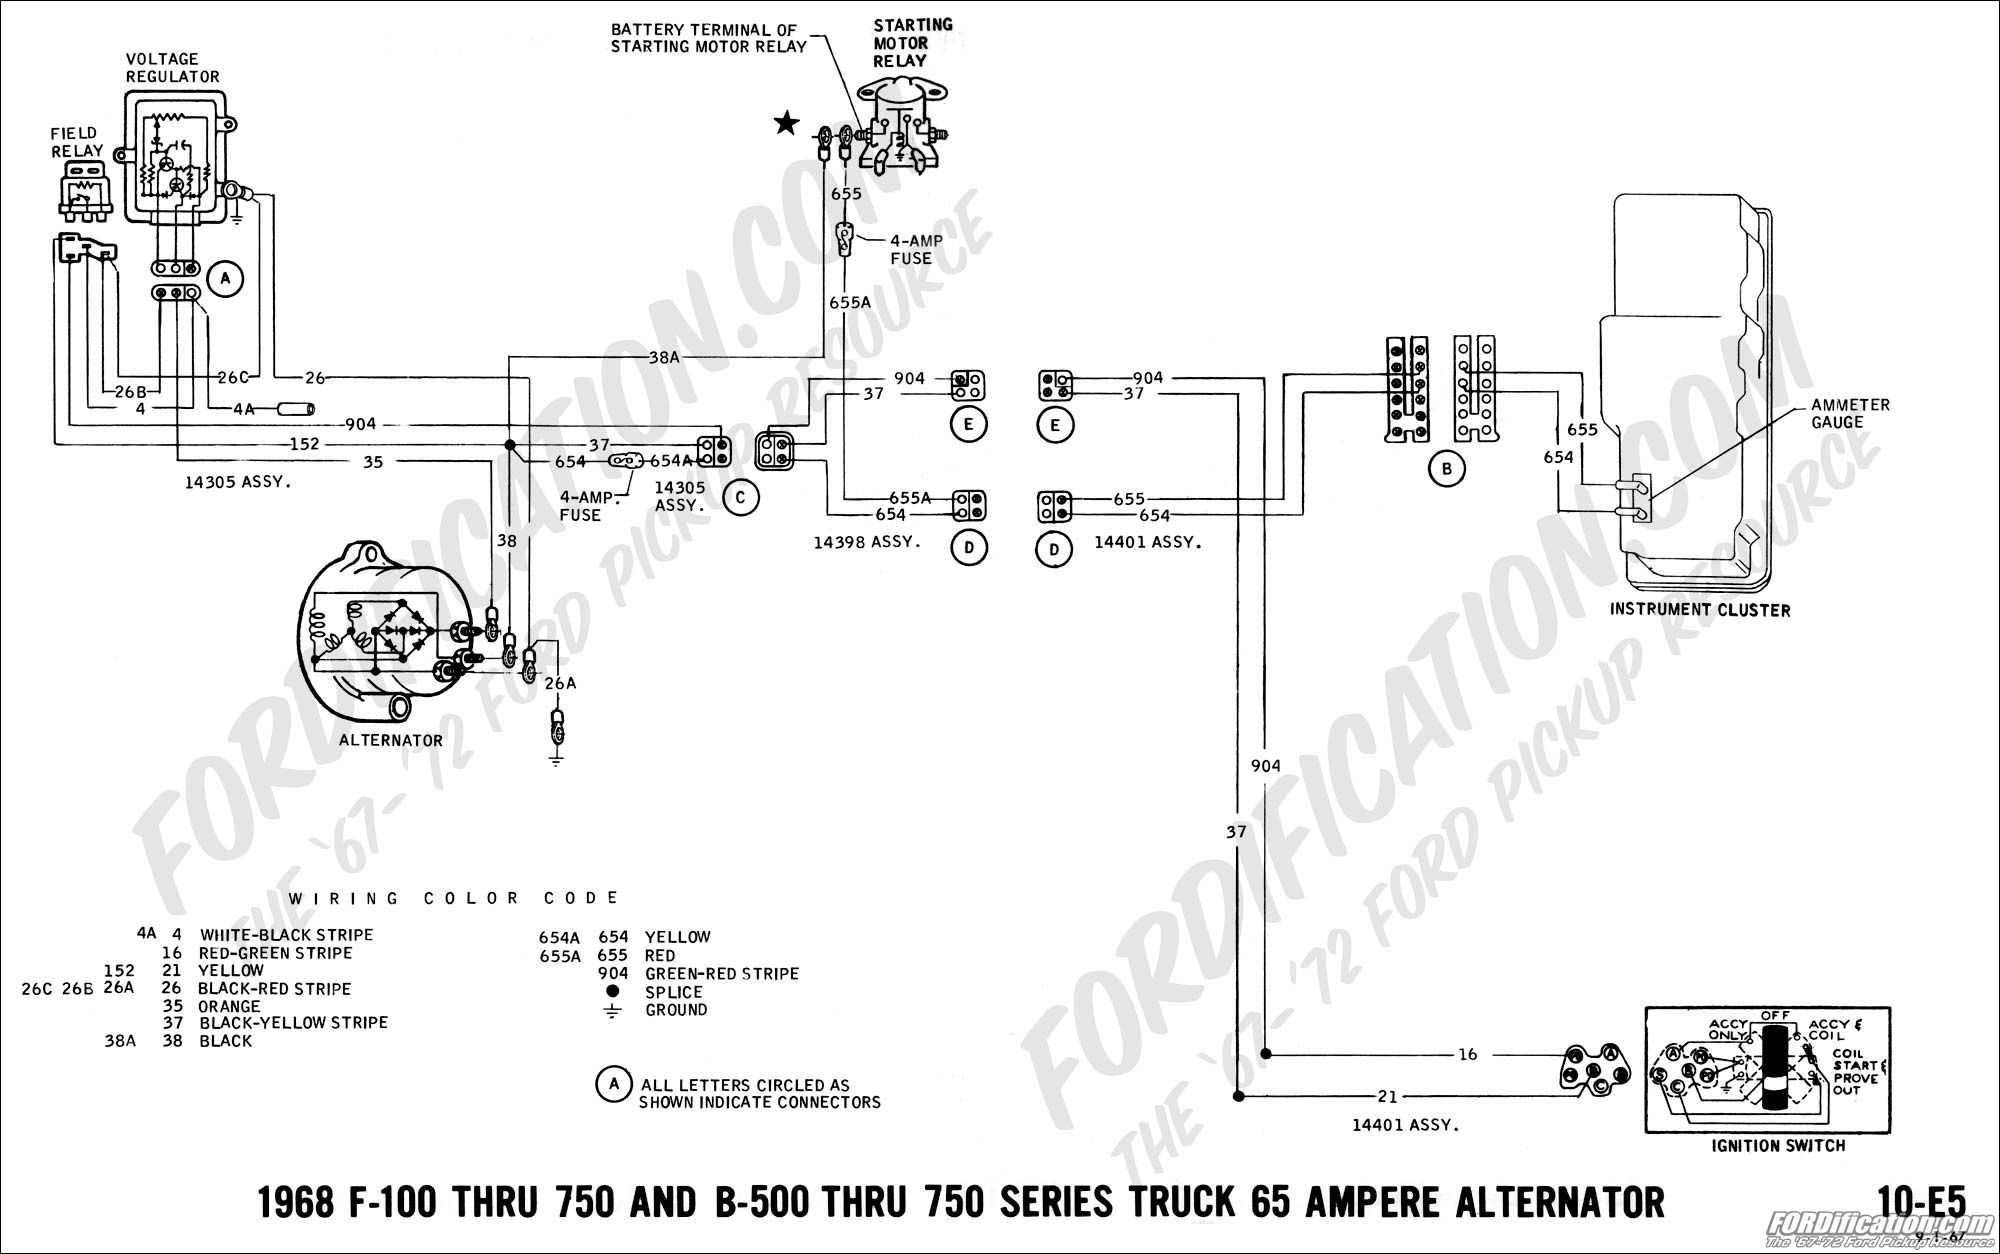 1975 ford f100 dash wiring diagram 68 ford alternator wiring diagram | 76 ford f150 | diagram ... 1975 ford f100 diagrams